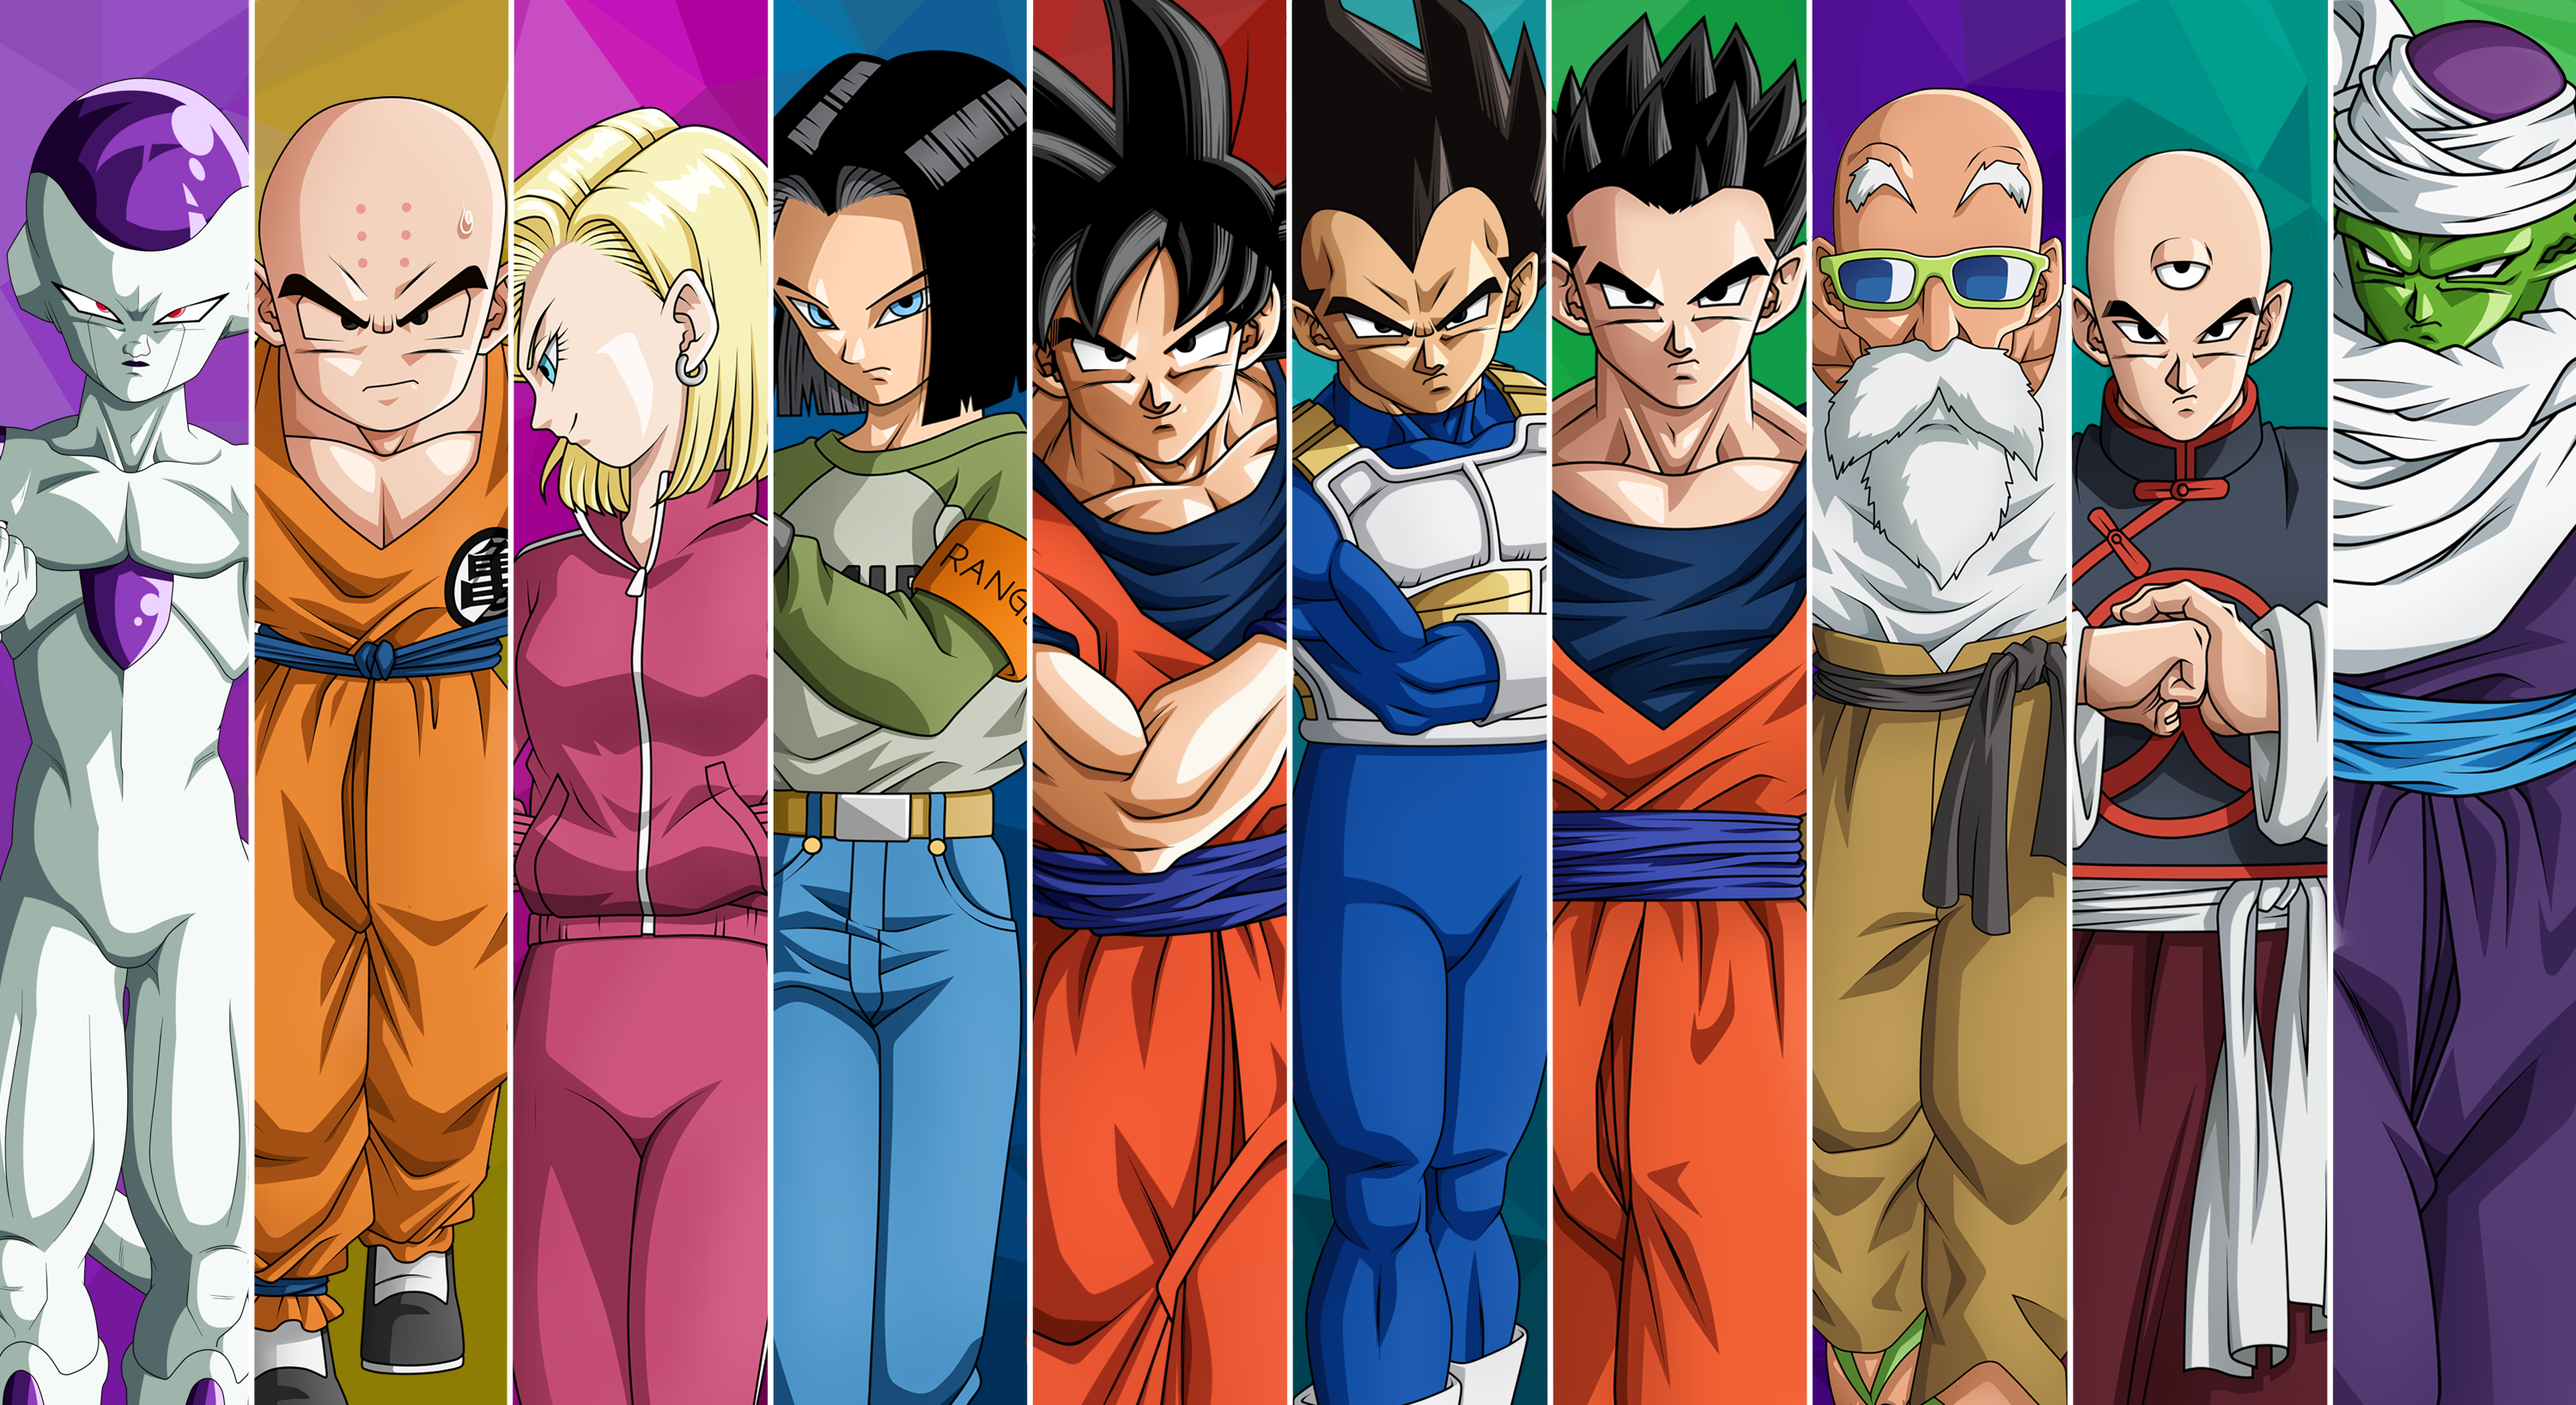 Fondos De Pantalla De Dragon Ball: Dragon Ball Super Fondo De Pantalla HD